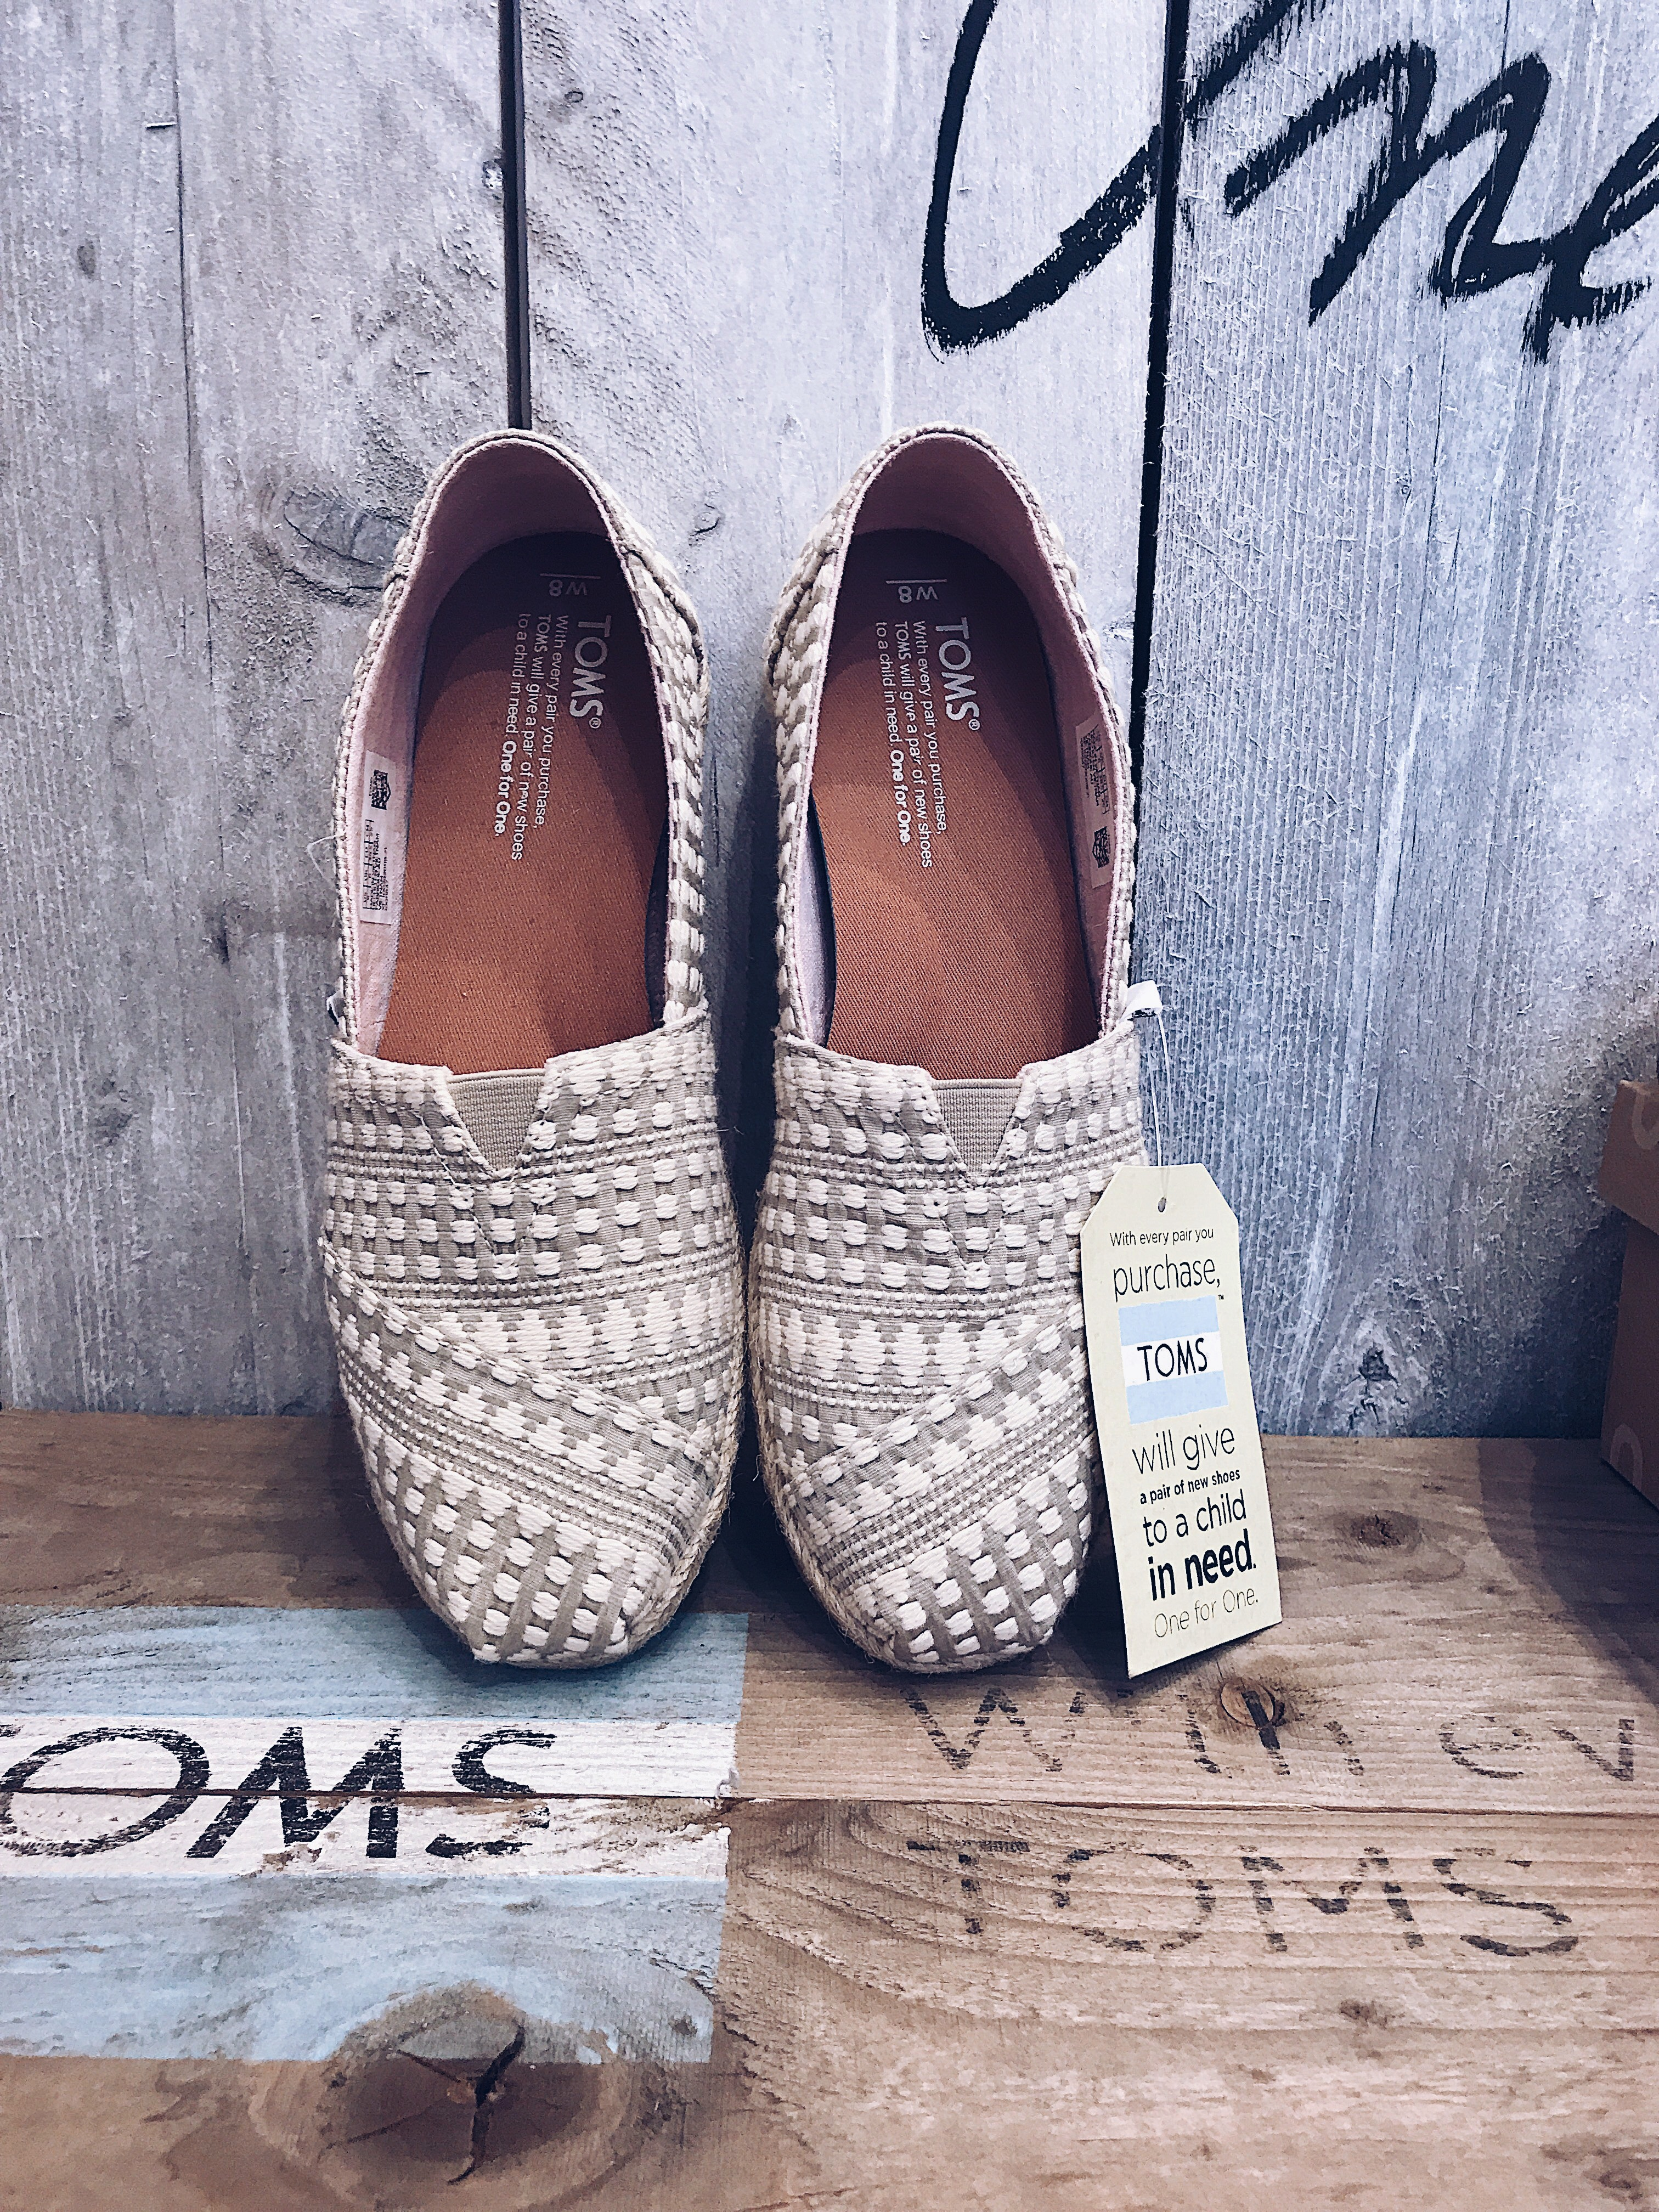 Toms Espadrilles, daisies and glitter